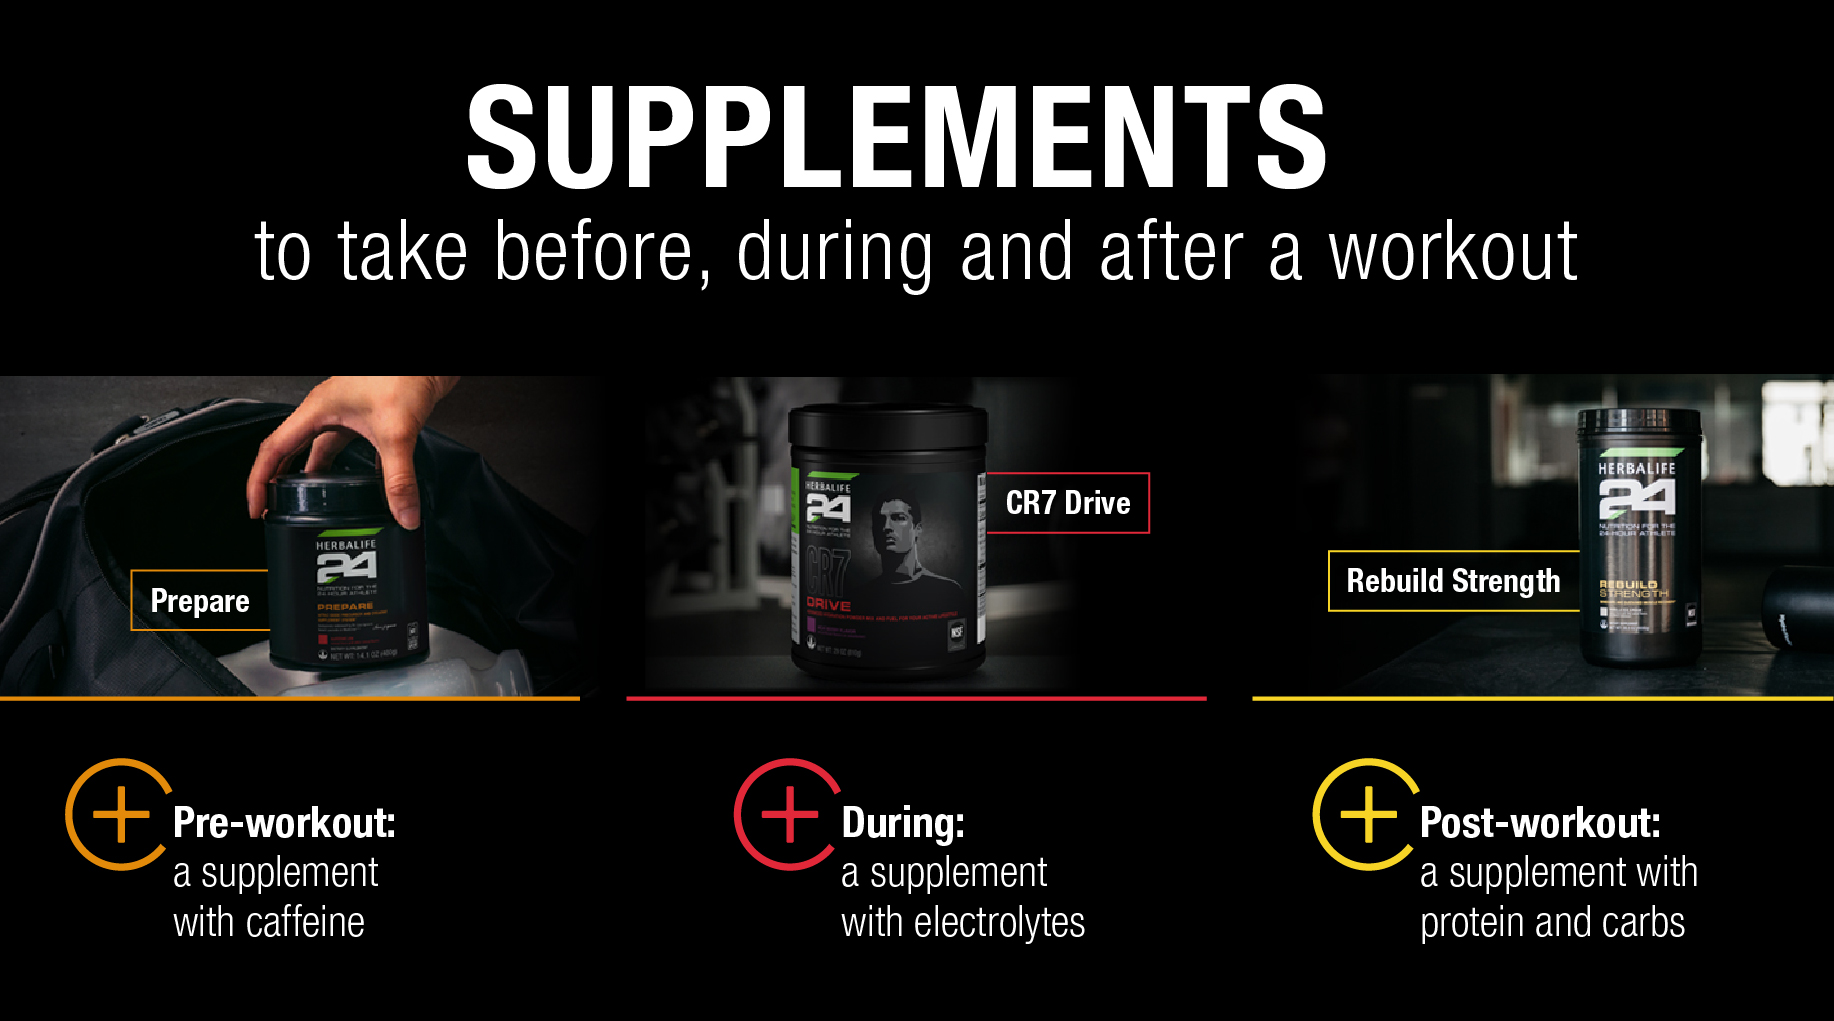 Supplements to take before, during and after a workout